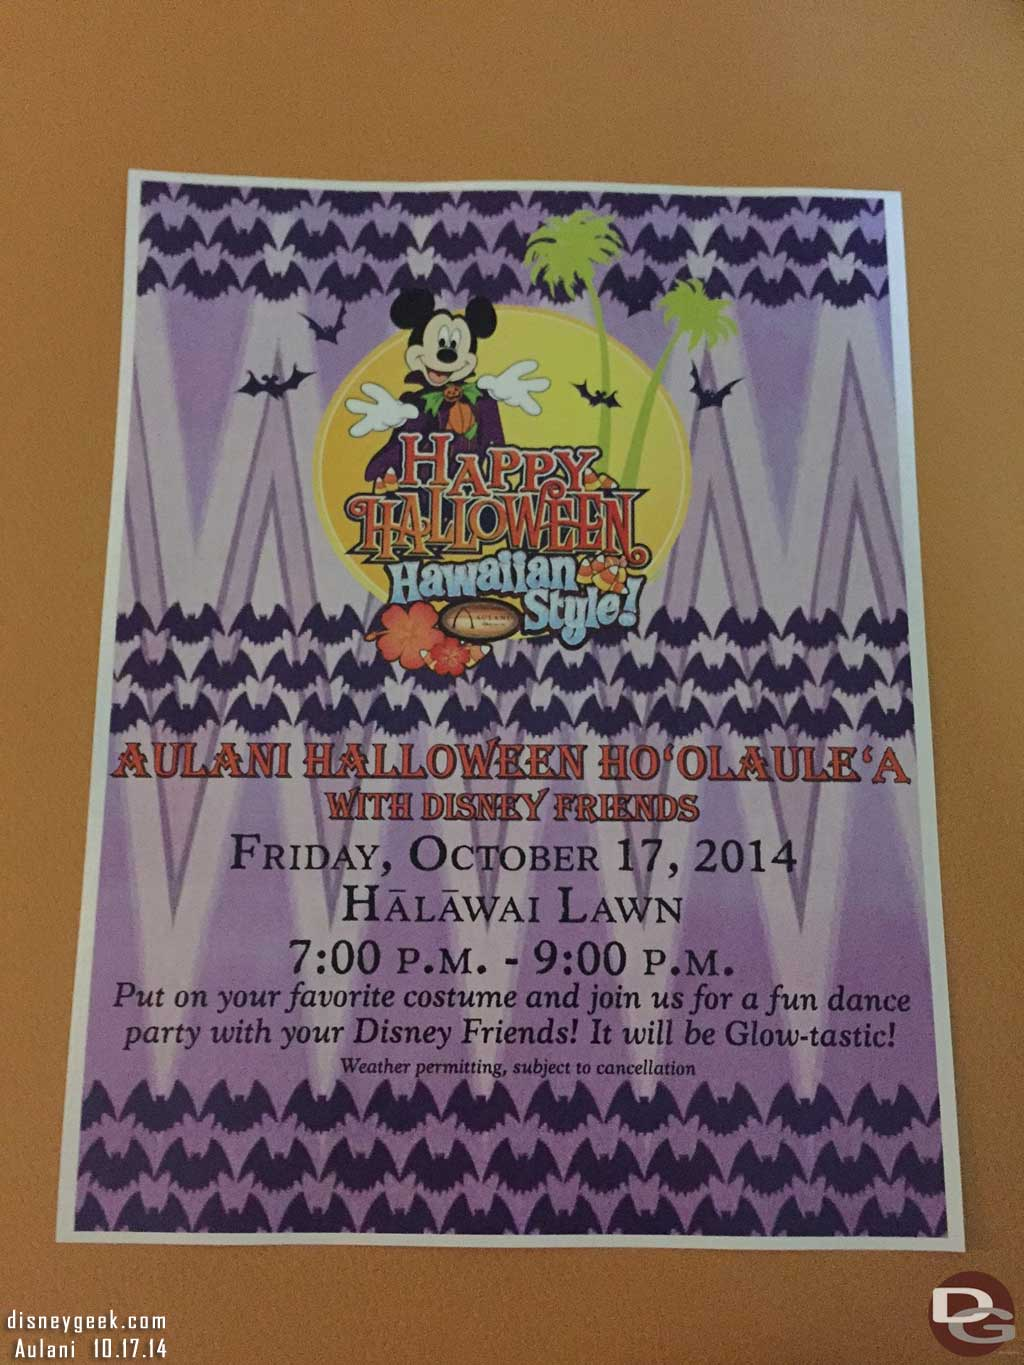 #Aulani Halloween Ho'Olaule'A with Disney Friends Flyer for this evening